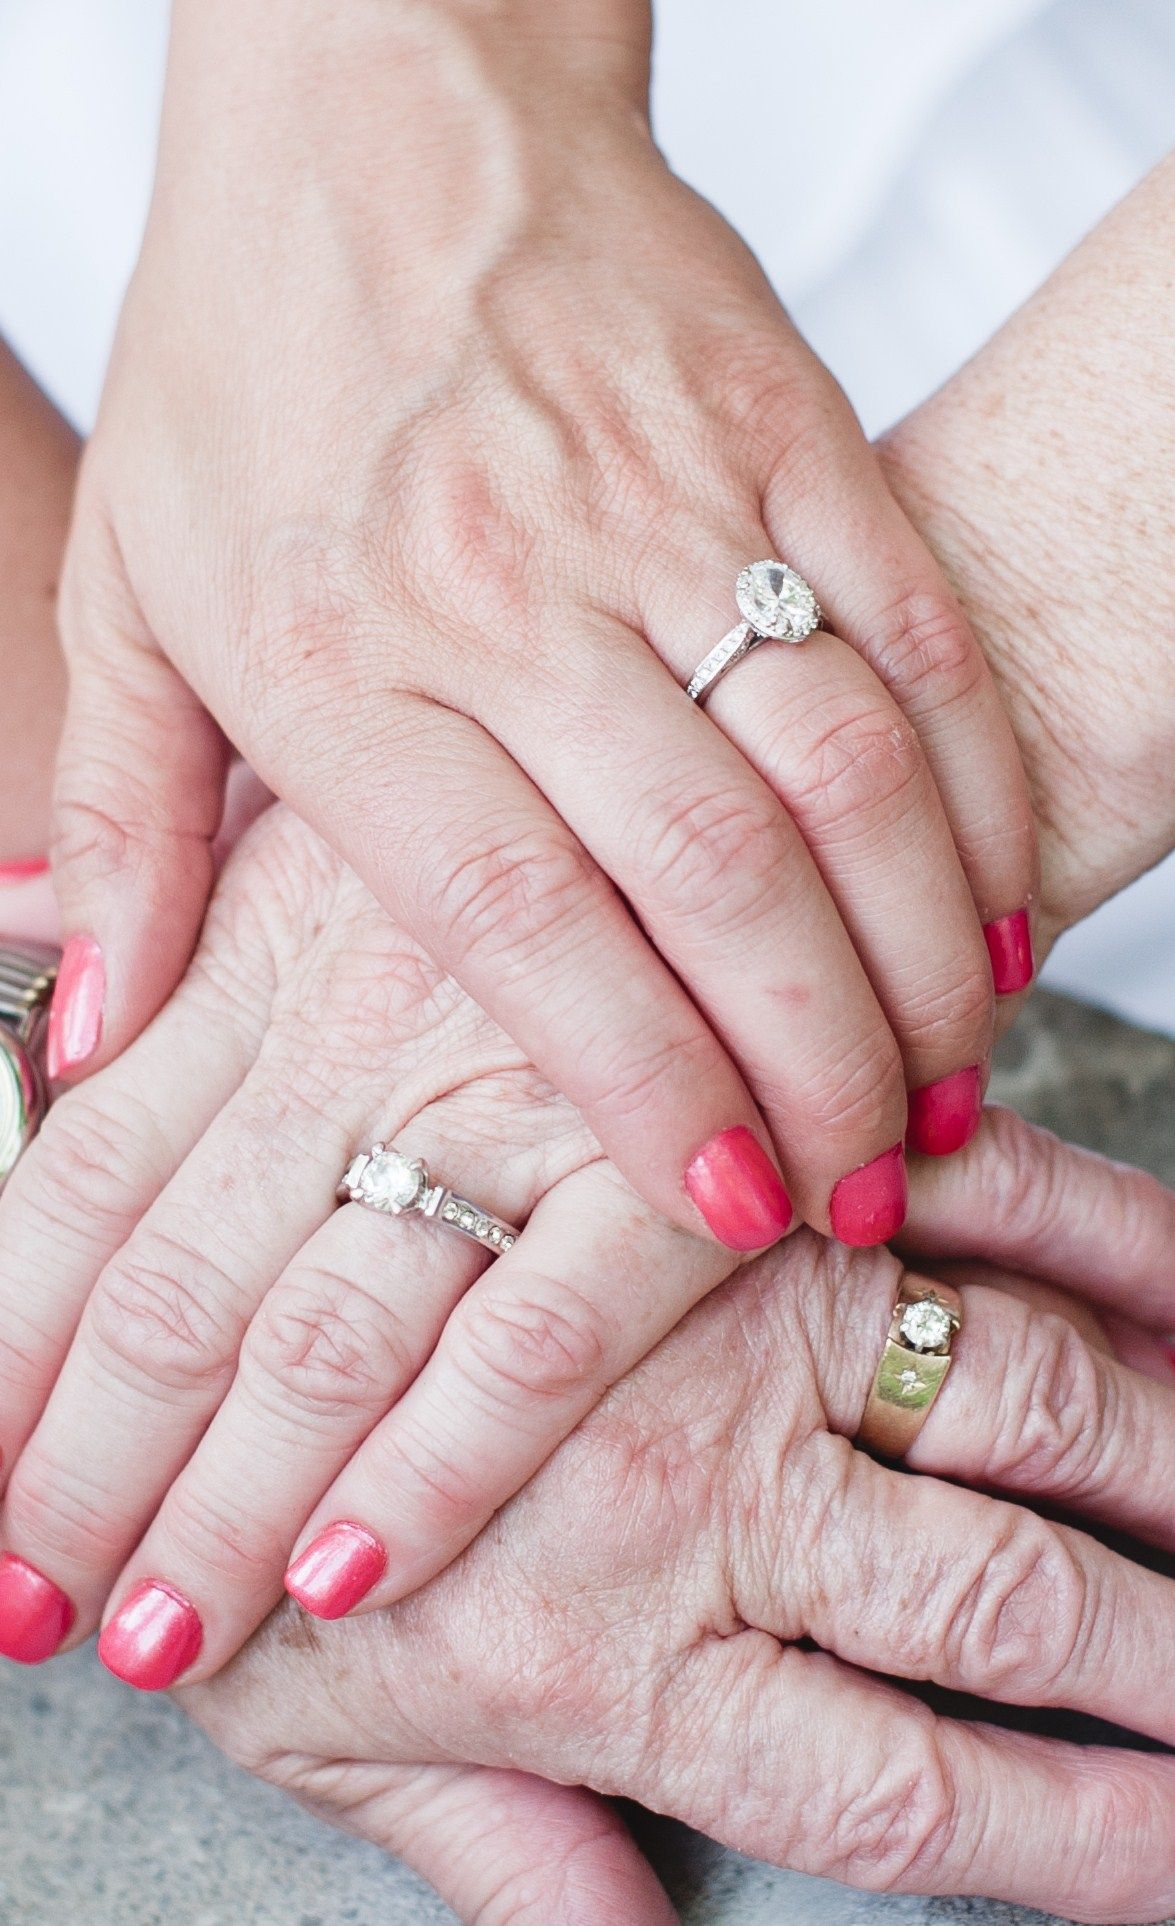 3 generation wedding ring picture- a picture I will always cherish ...